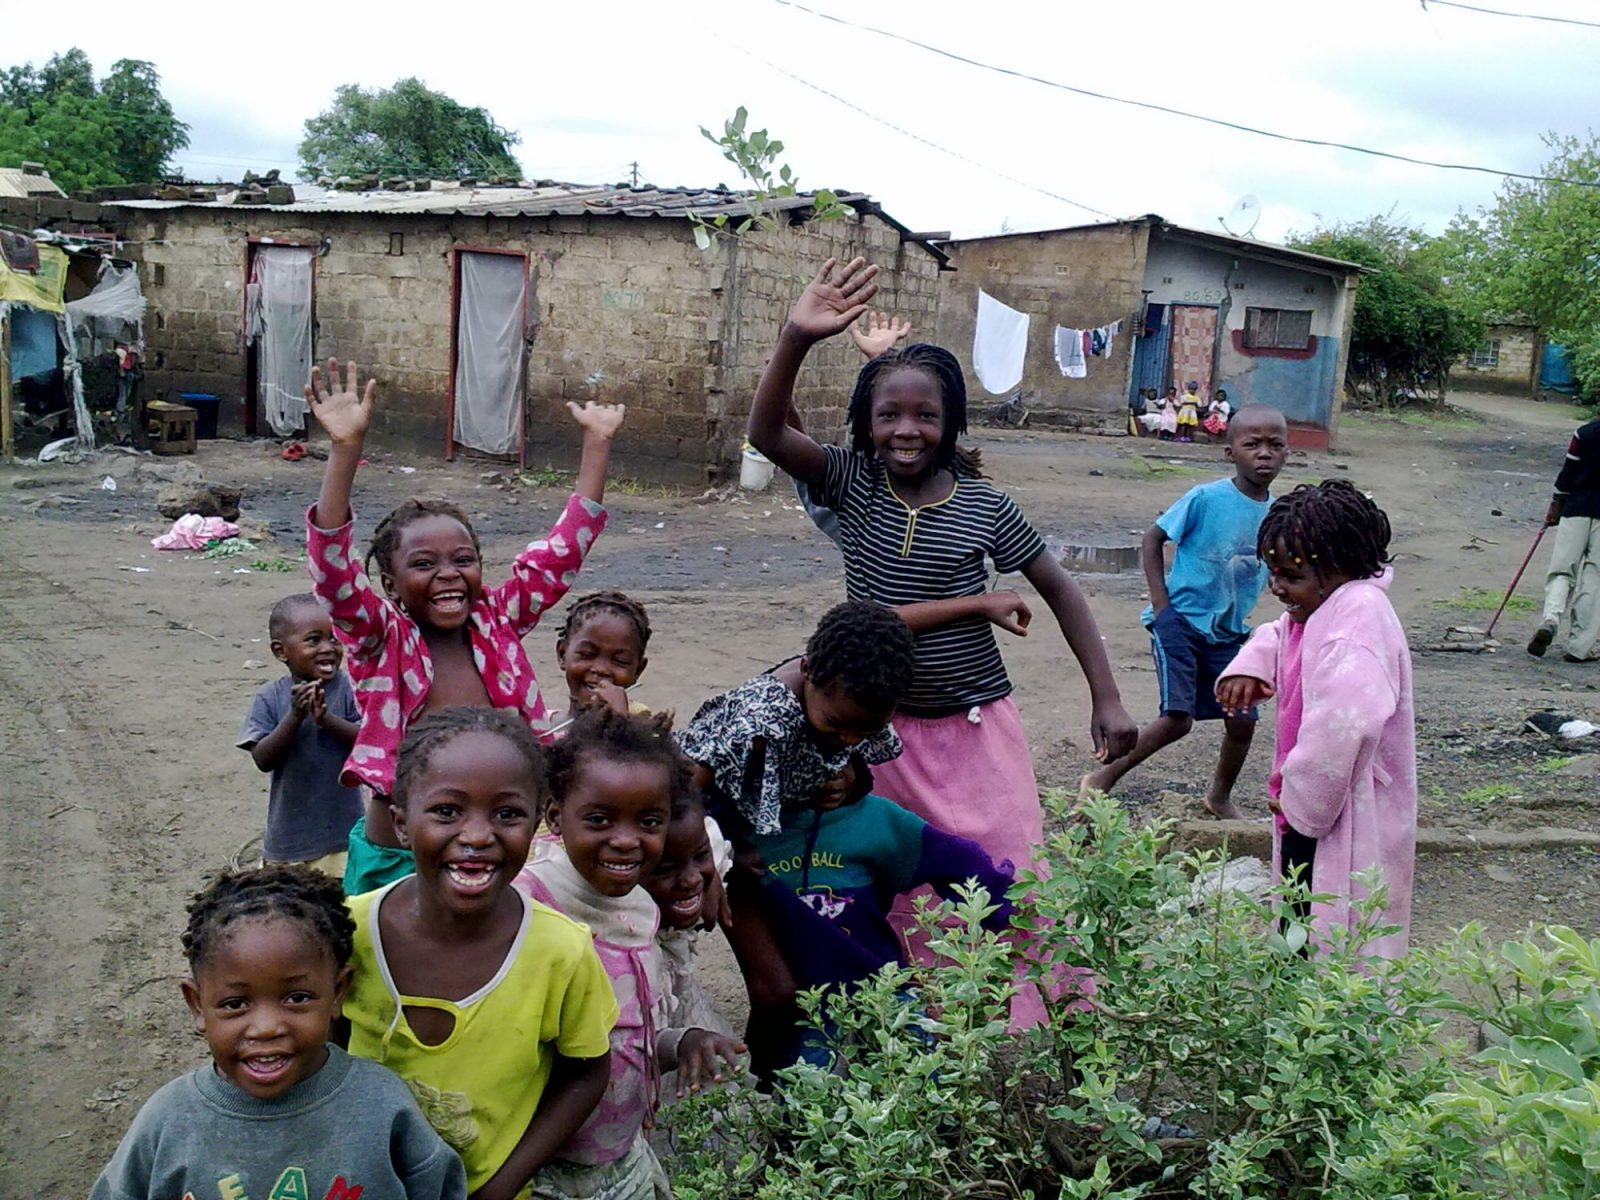 Violence against children in Zambia